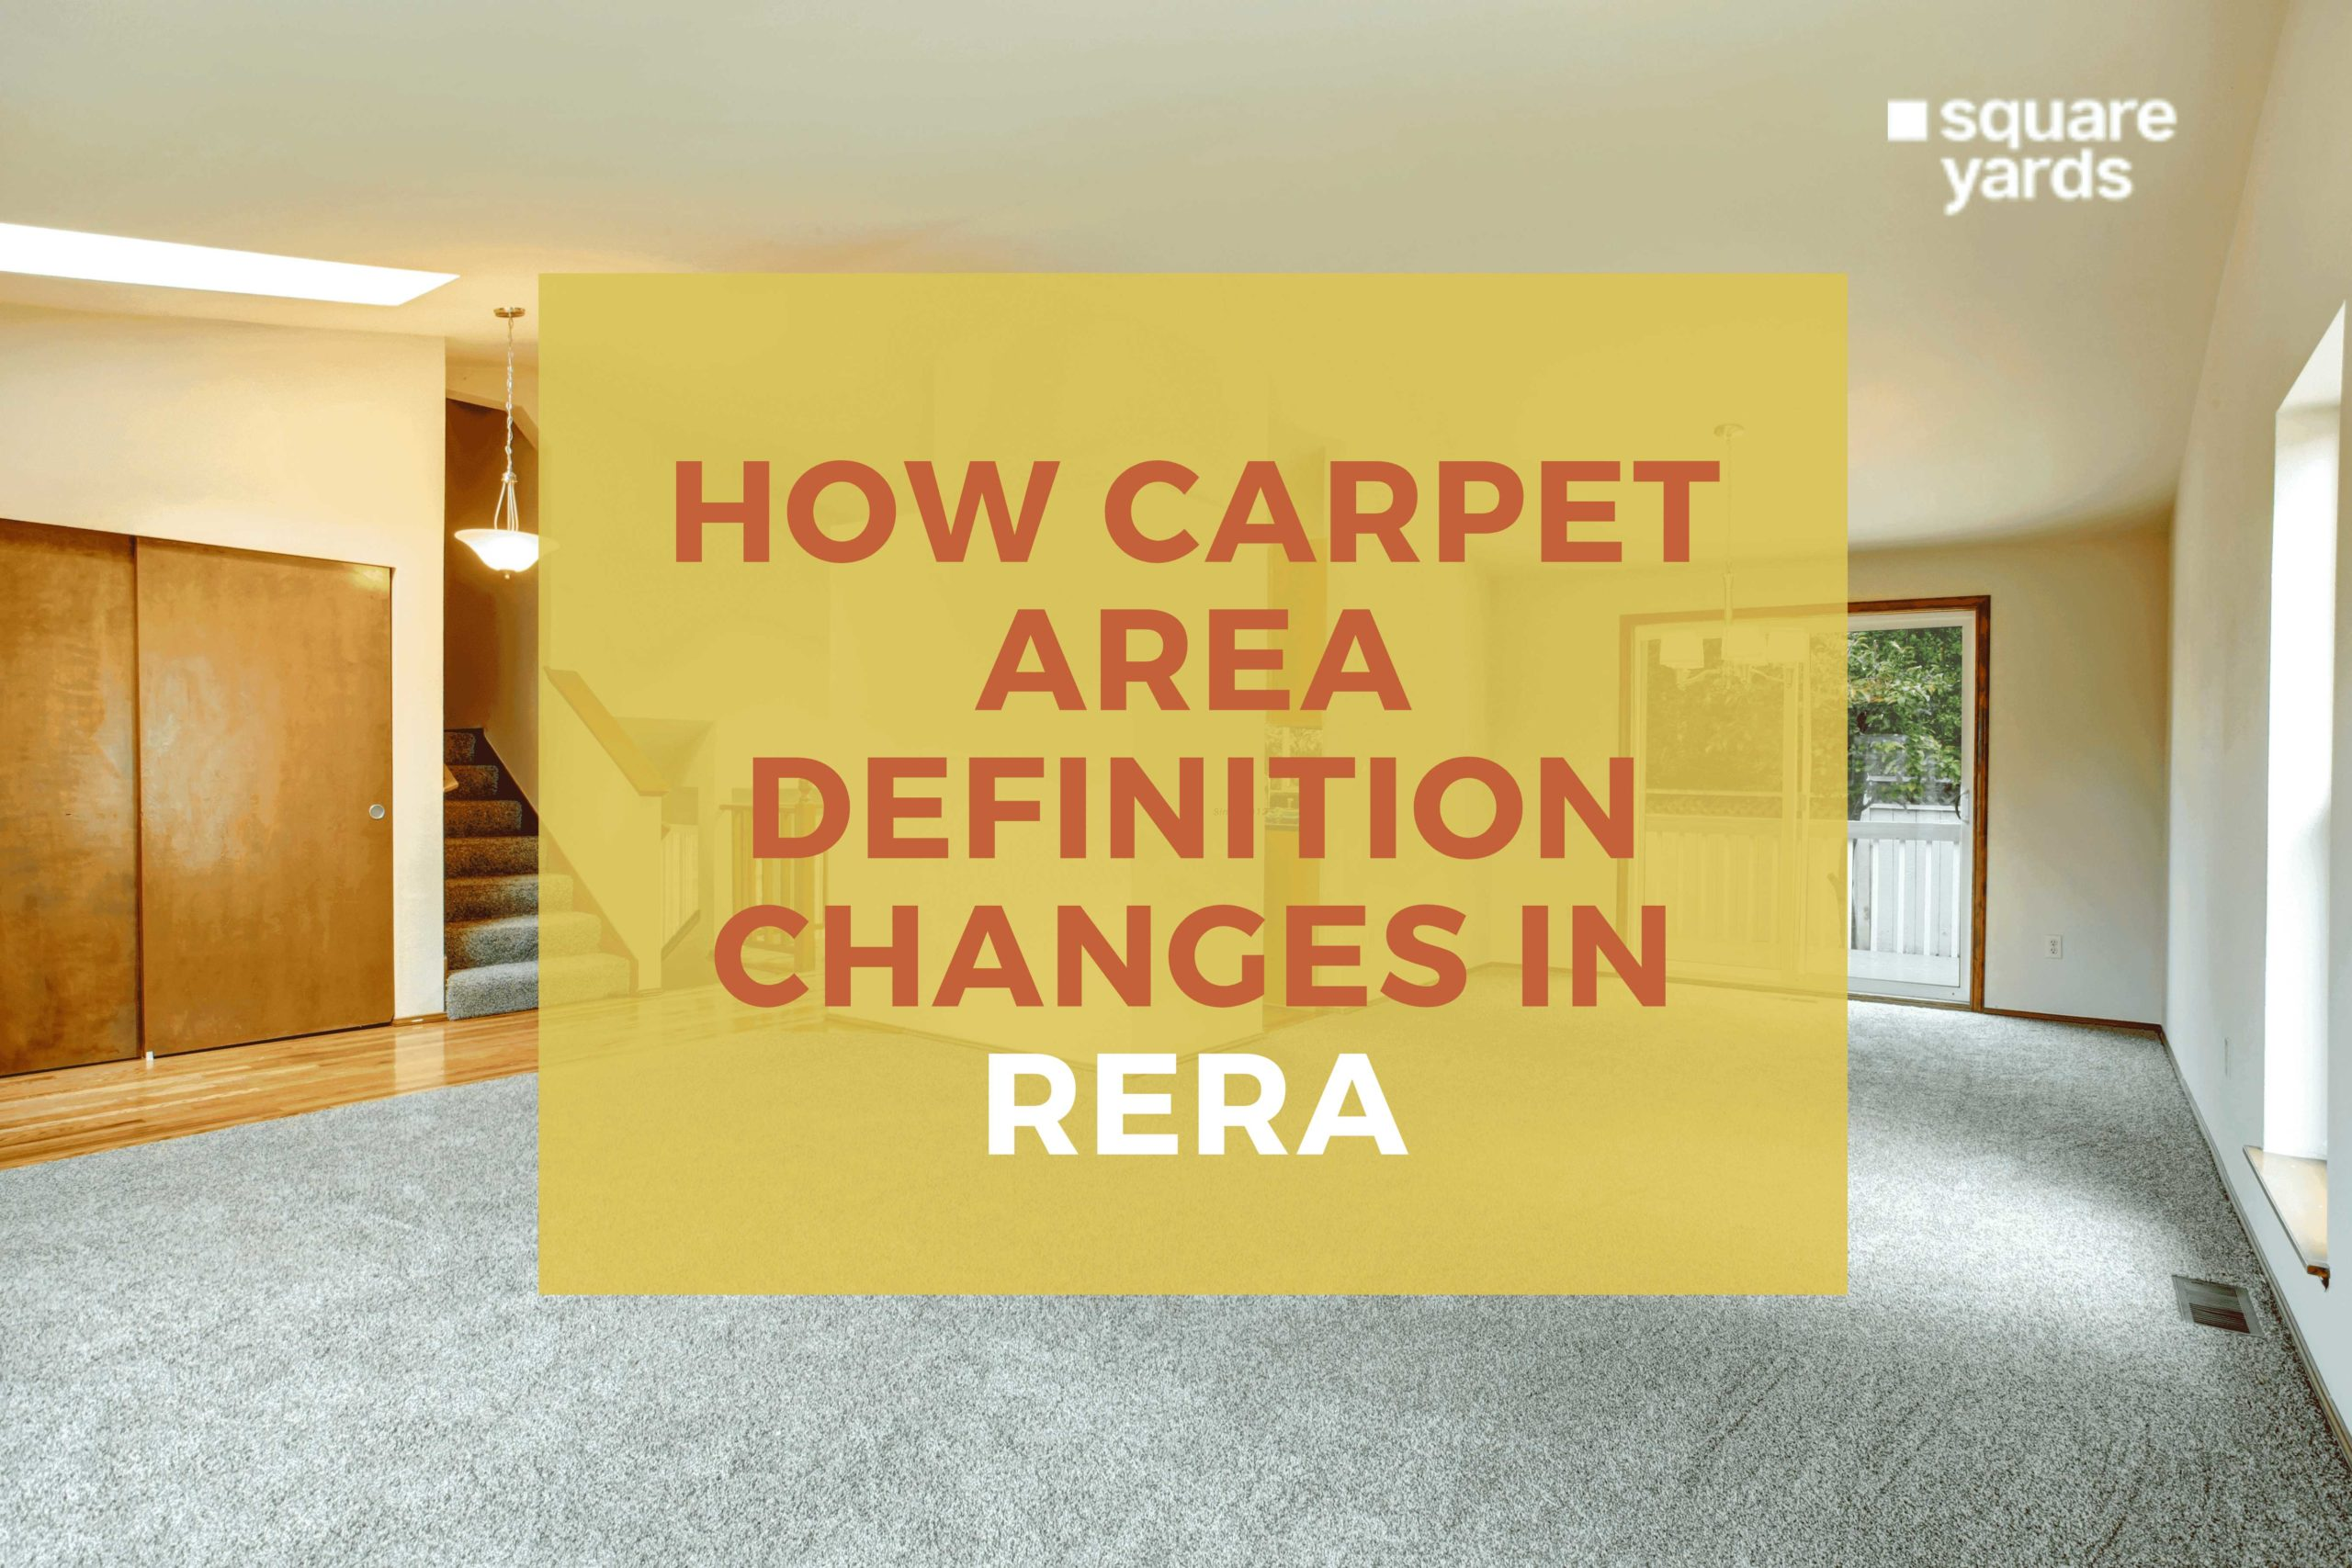 How carpet area definition changes in RERA